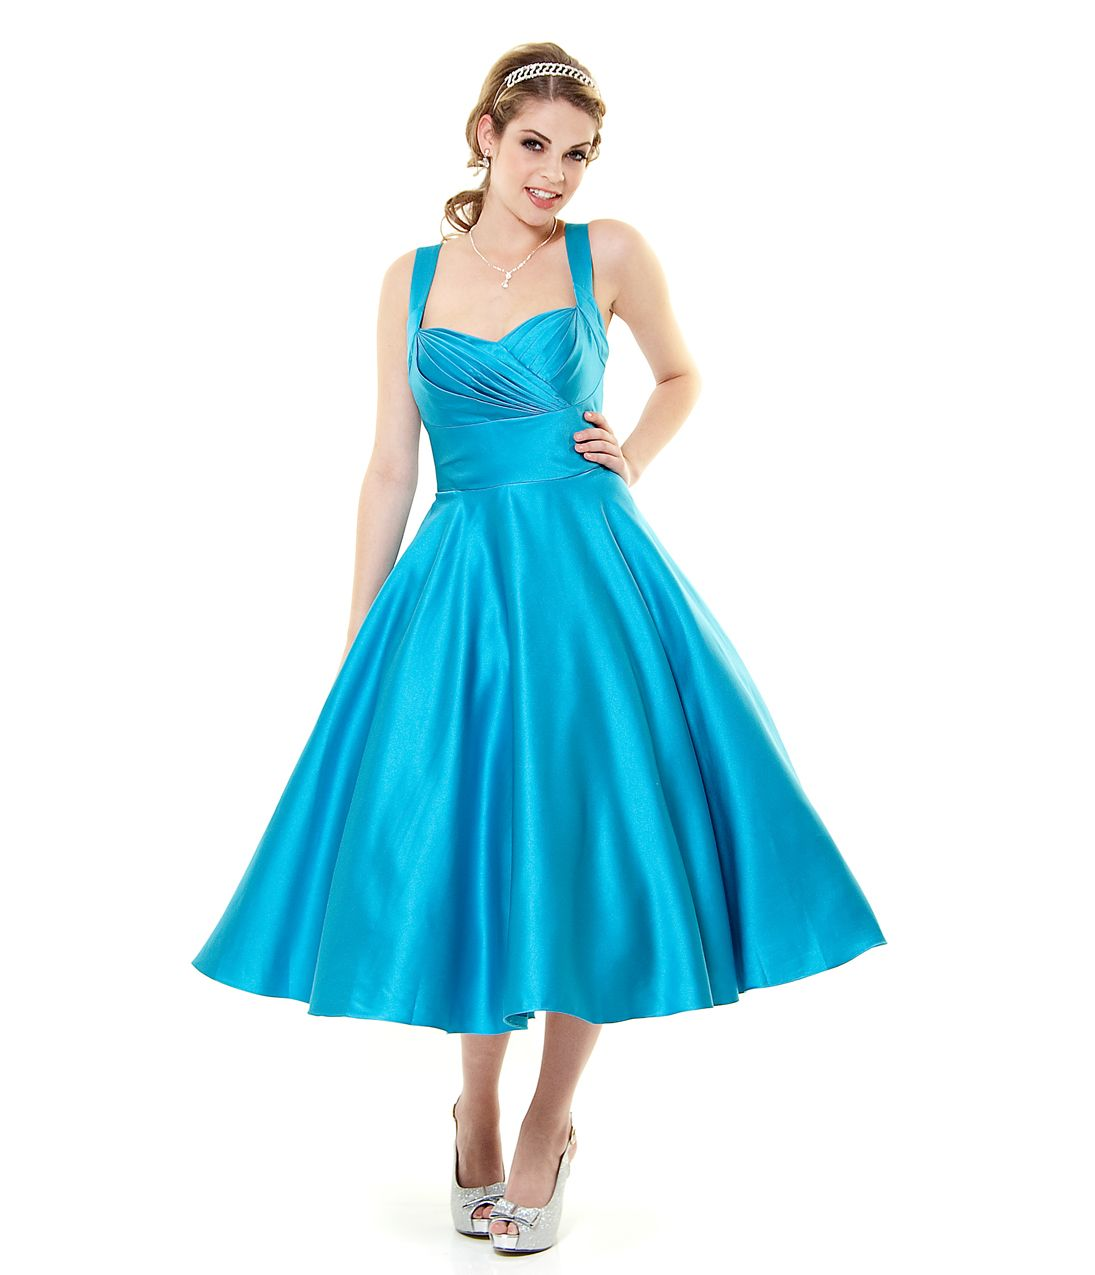 Turquoise satin happily ever after pleated swing dress unique turquoise satin happily ever after pleated swing dress unique vintage prom dresses retro ombrellifo Choice Image